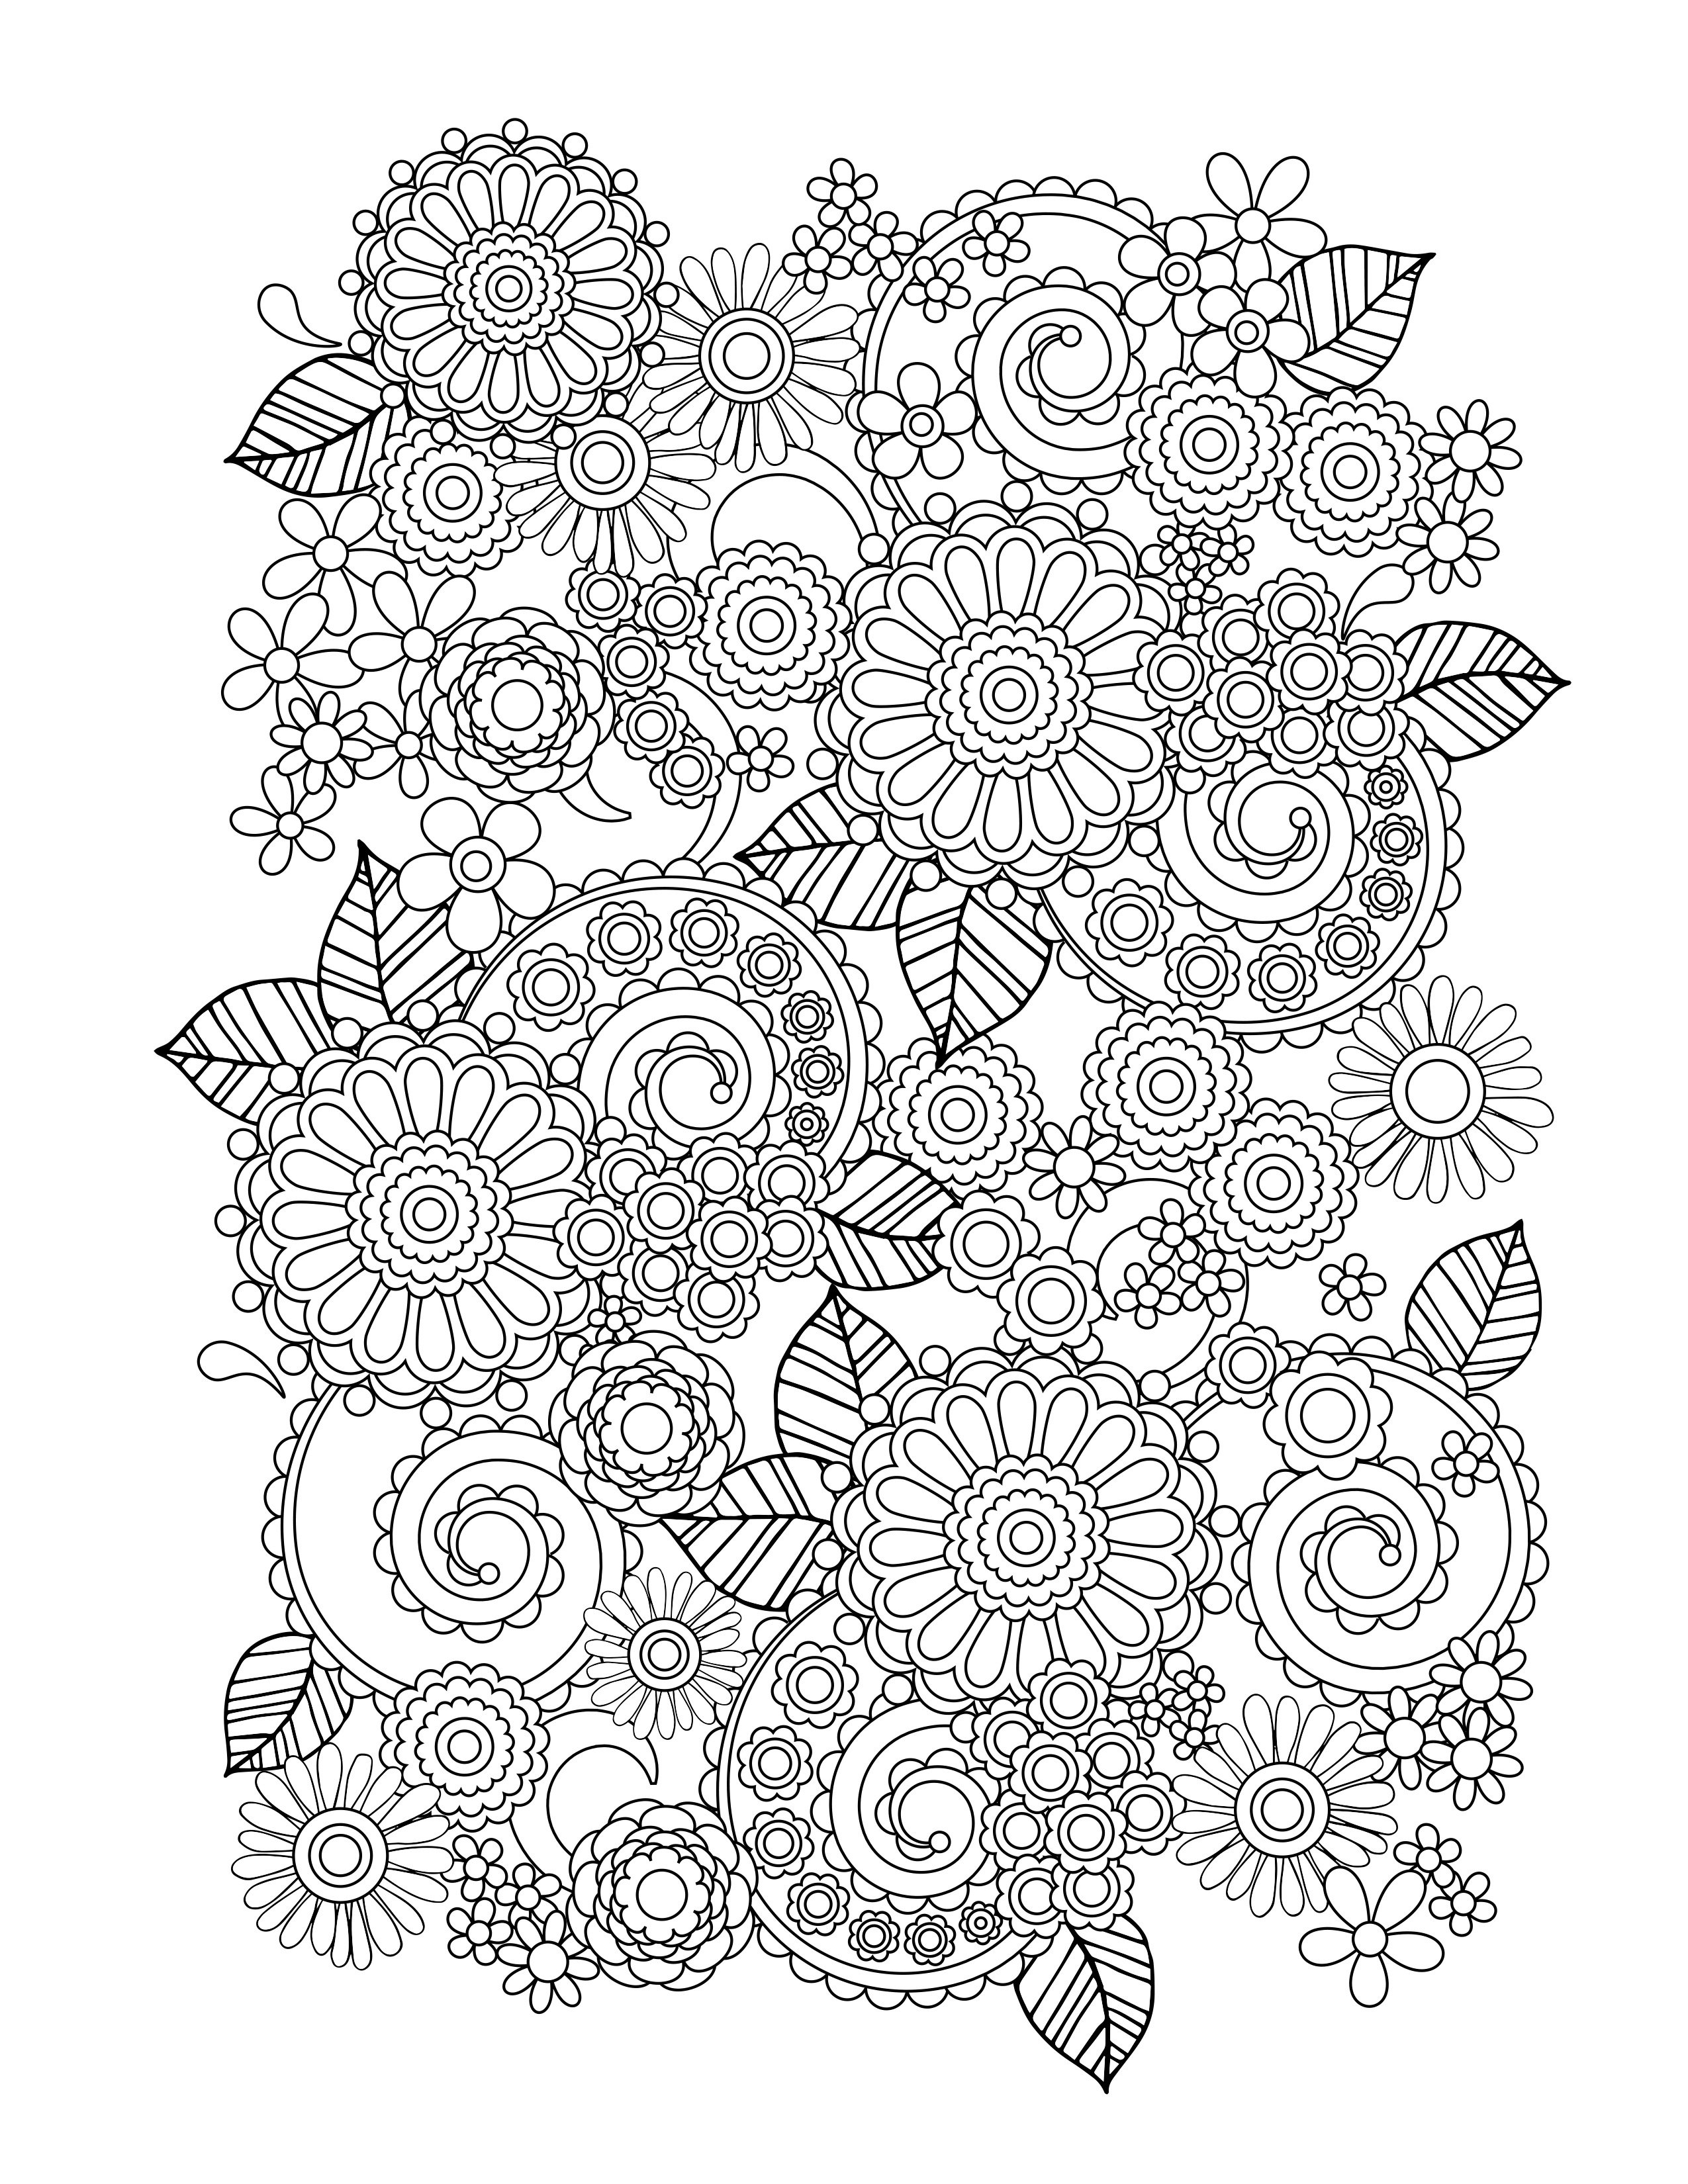 free artist coloring pages - photo#44